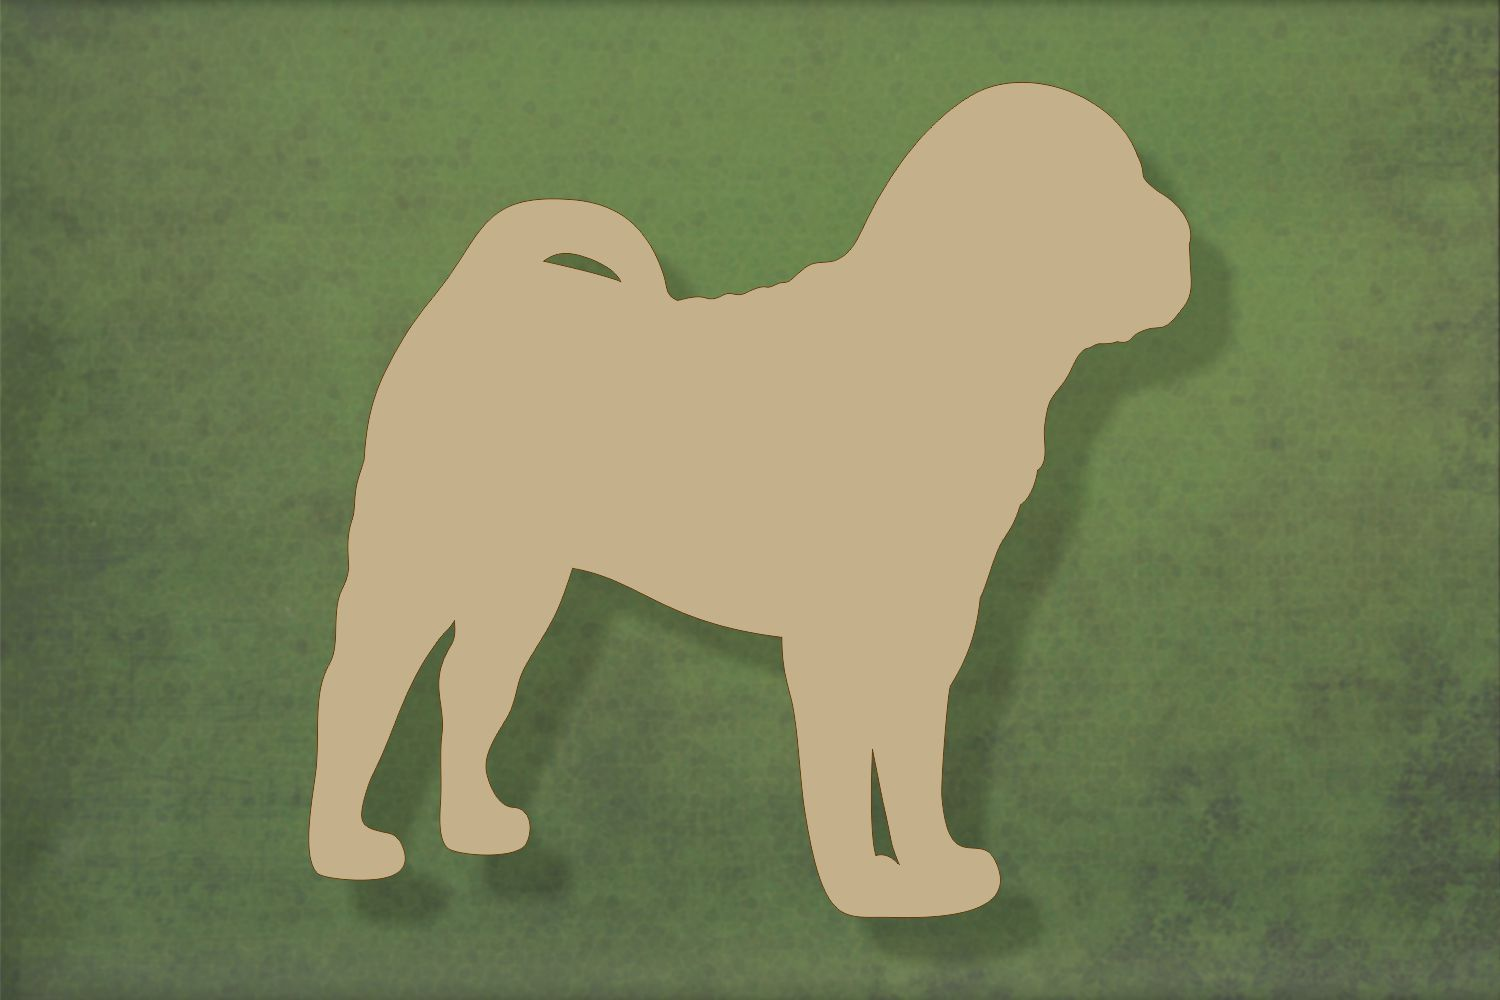 Laser cut, blank wooden Shar Pei 3 shape for craft